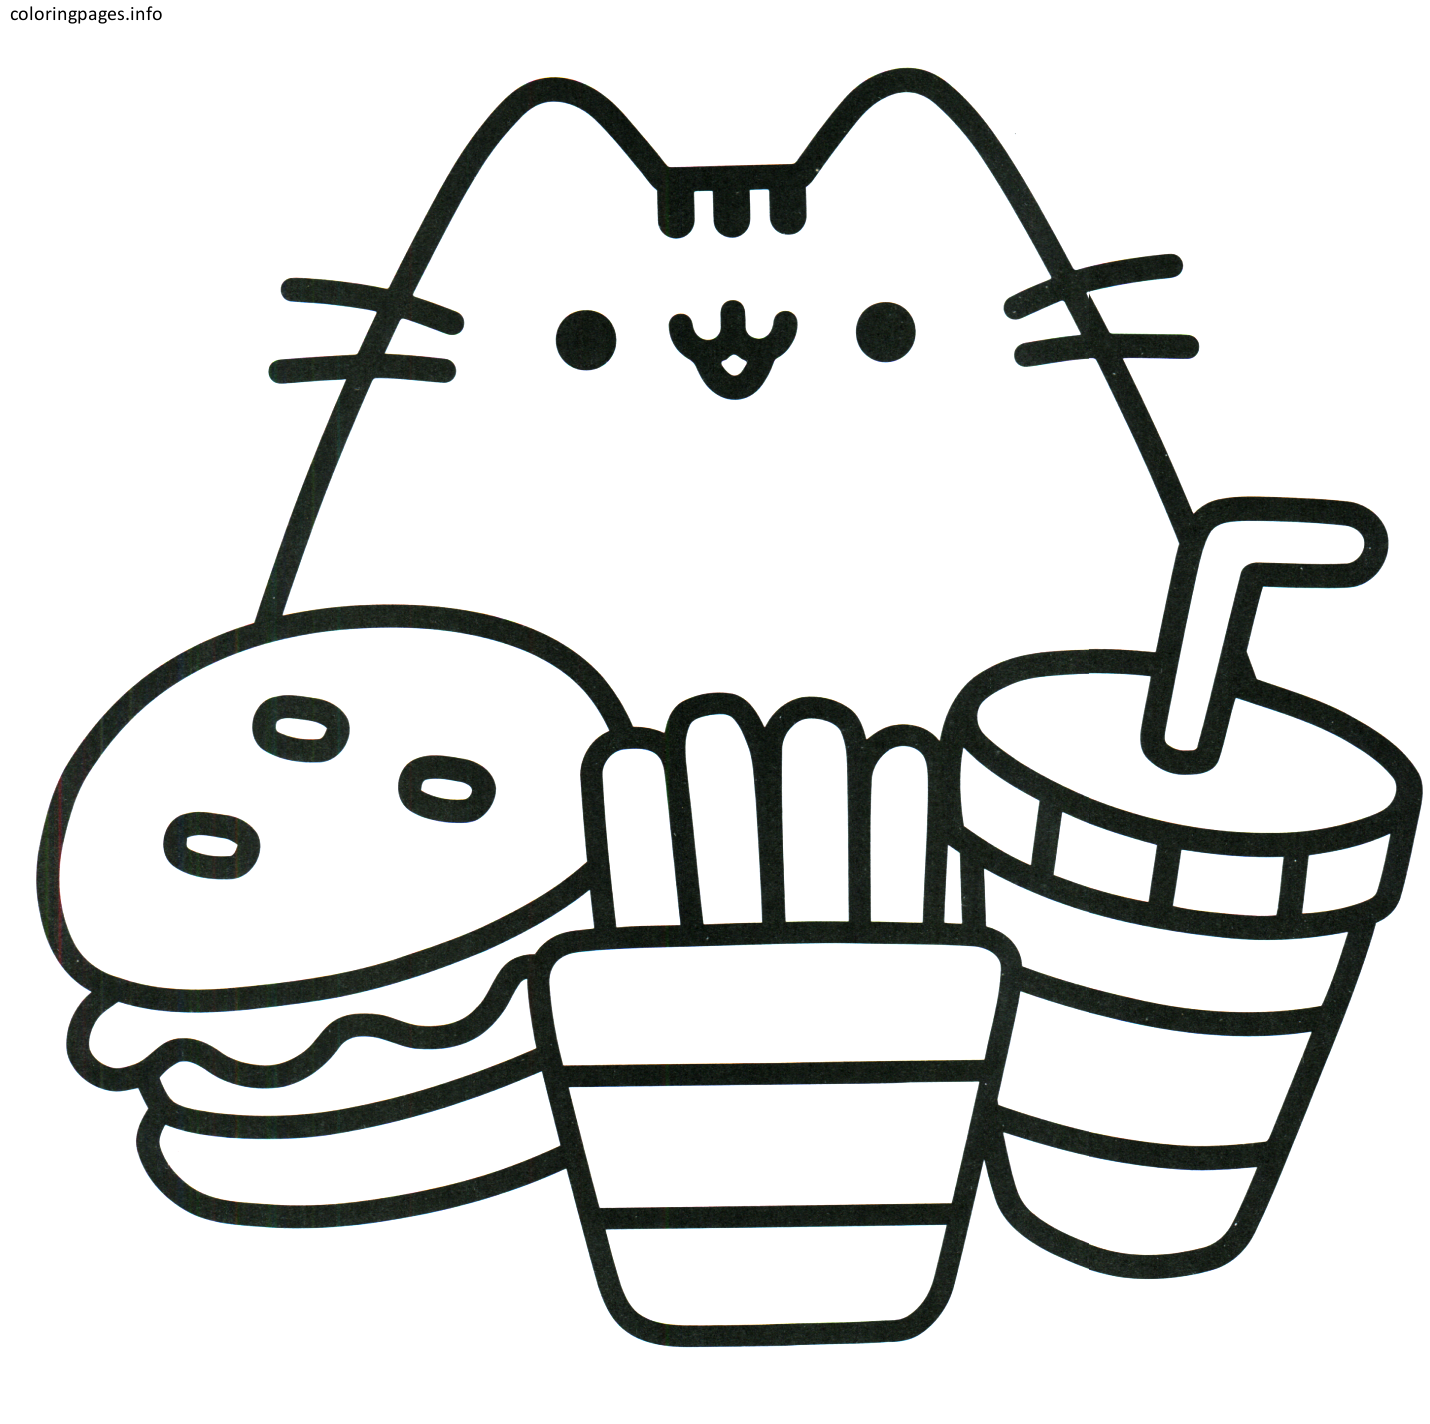 Kawaii Pusheen Cat Coloring Pages Pusheen Coloring Pages Unicorn Coloring Pages Kitty Coloring